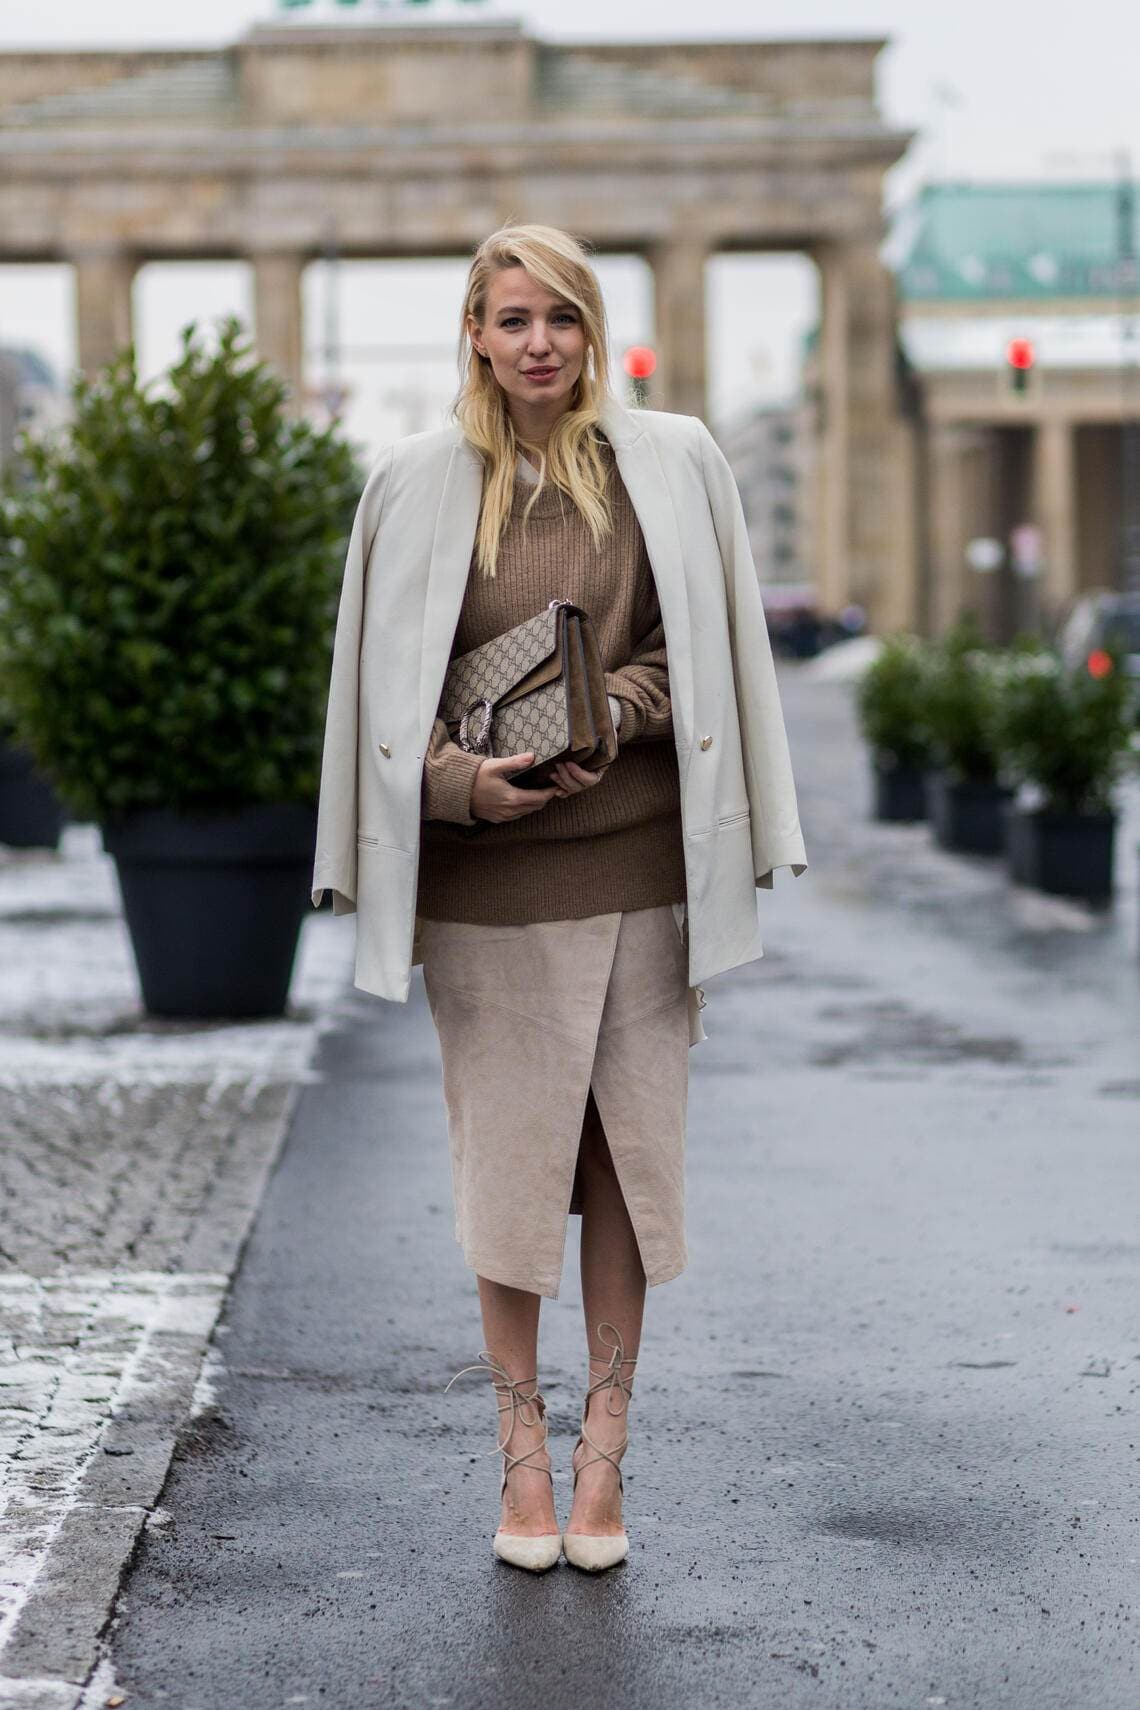 Look of the Day Leonie Sophie Hanne